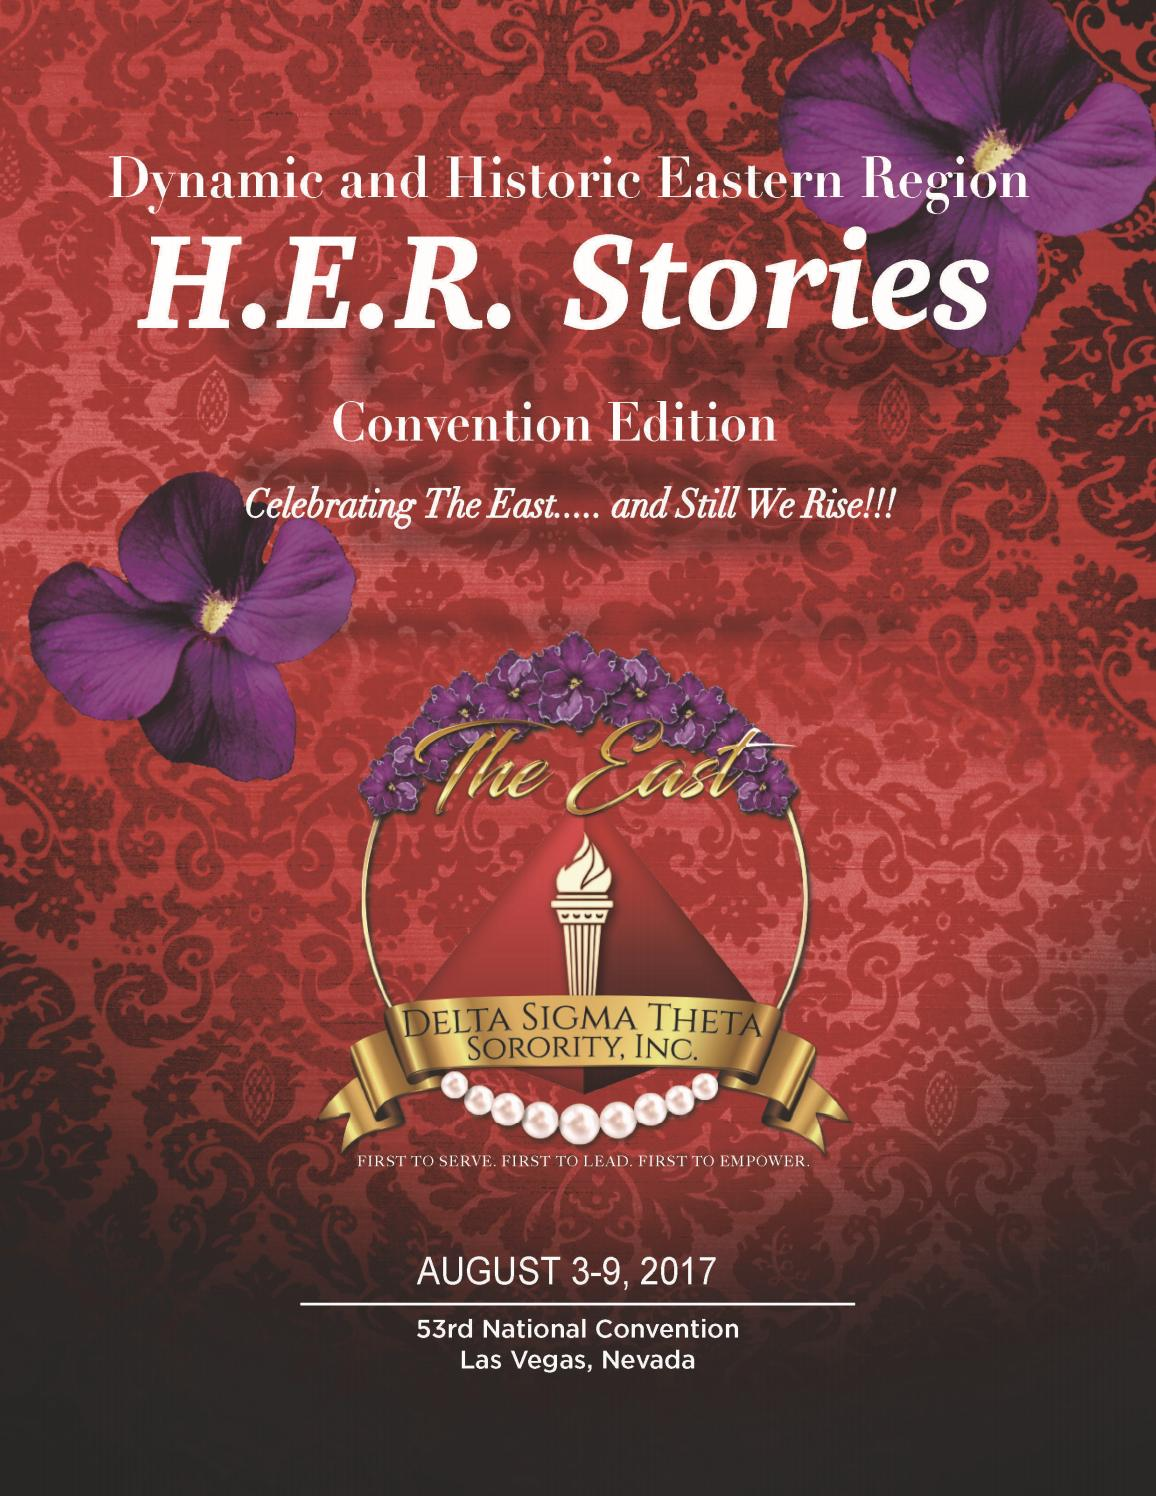 Her stories journal convention edition by dst eastern region her stories journal convention edition by dst eastern region issuu buycottarizona Choice Image